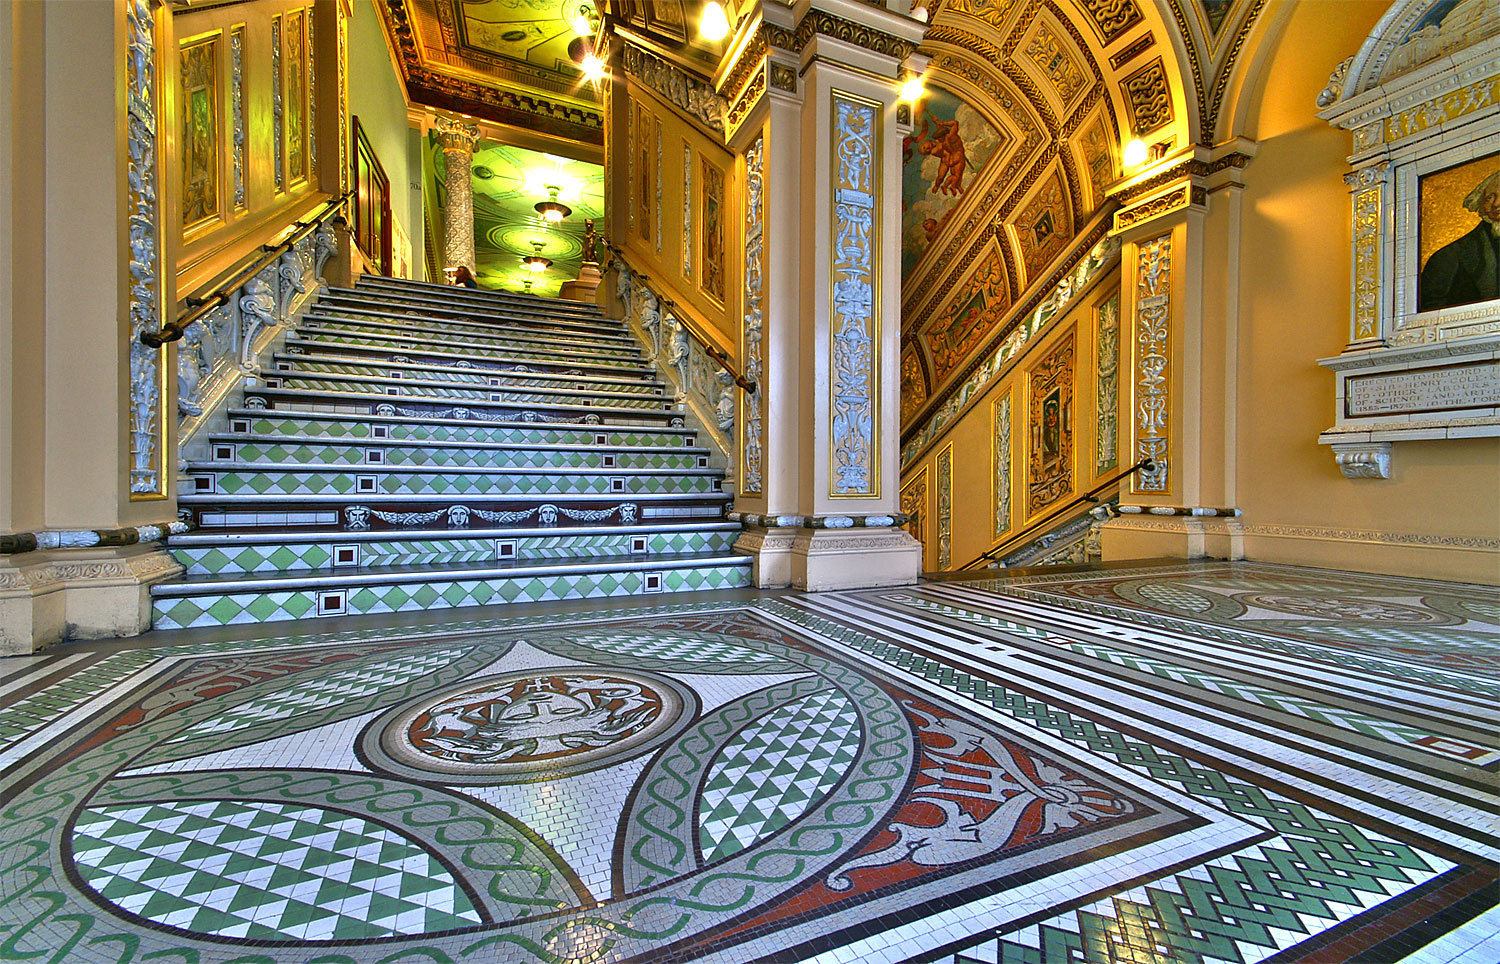 The victoria and albert museum review essay